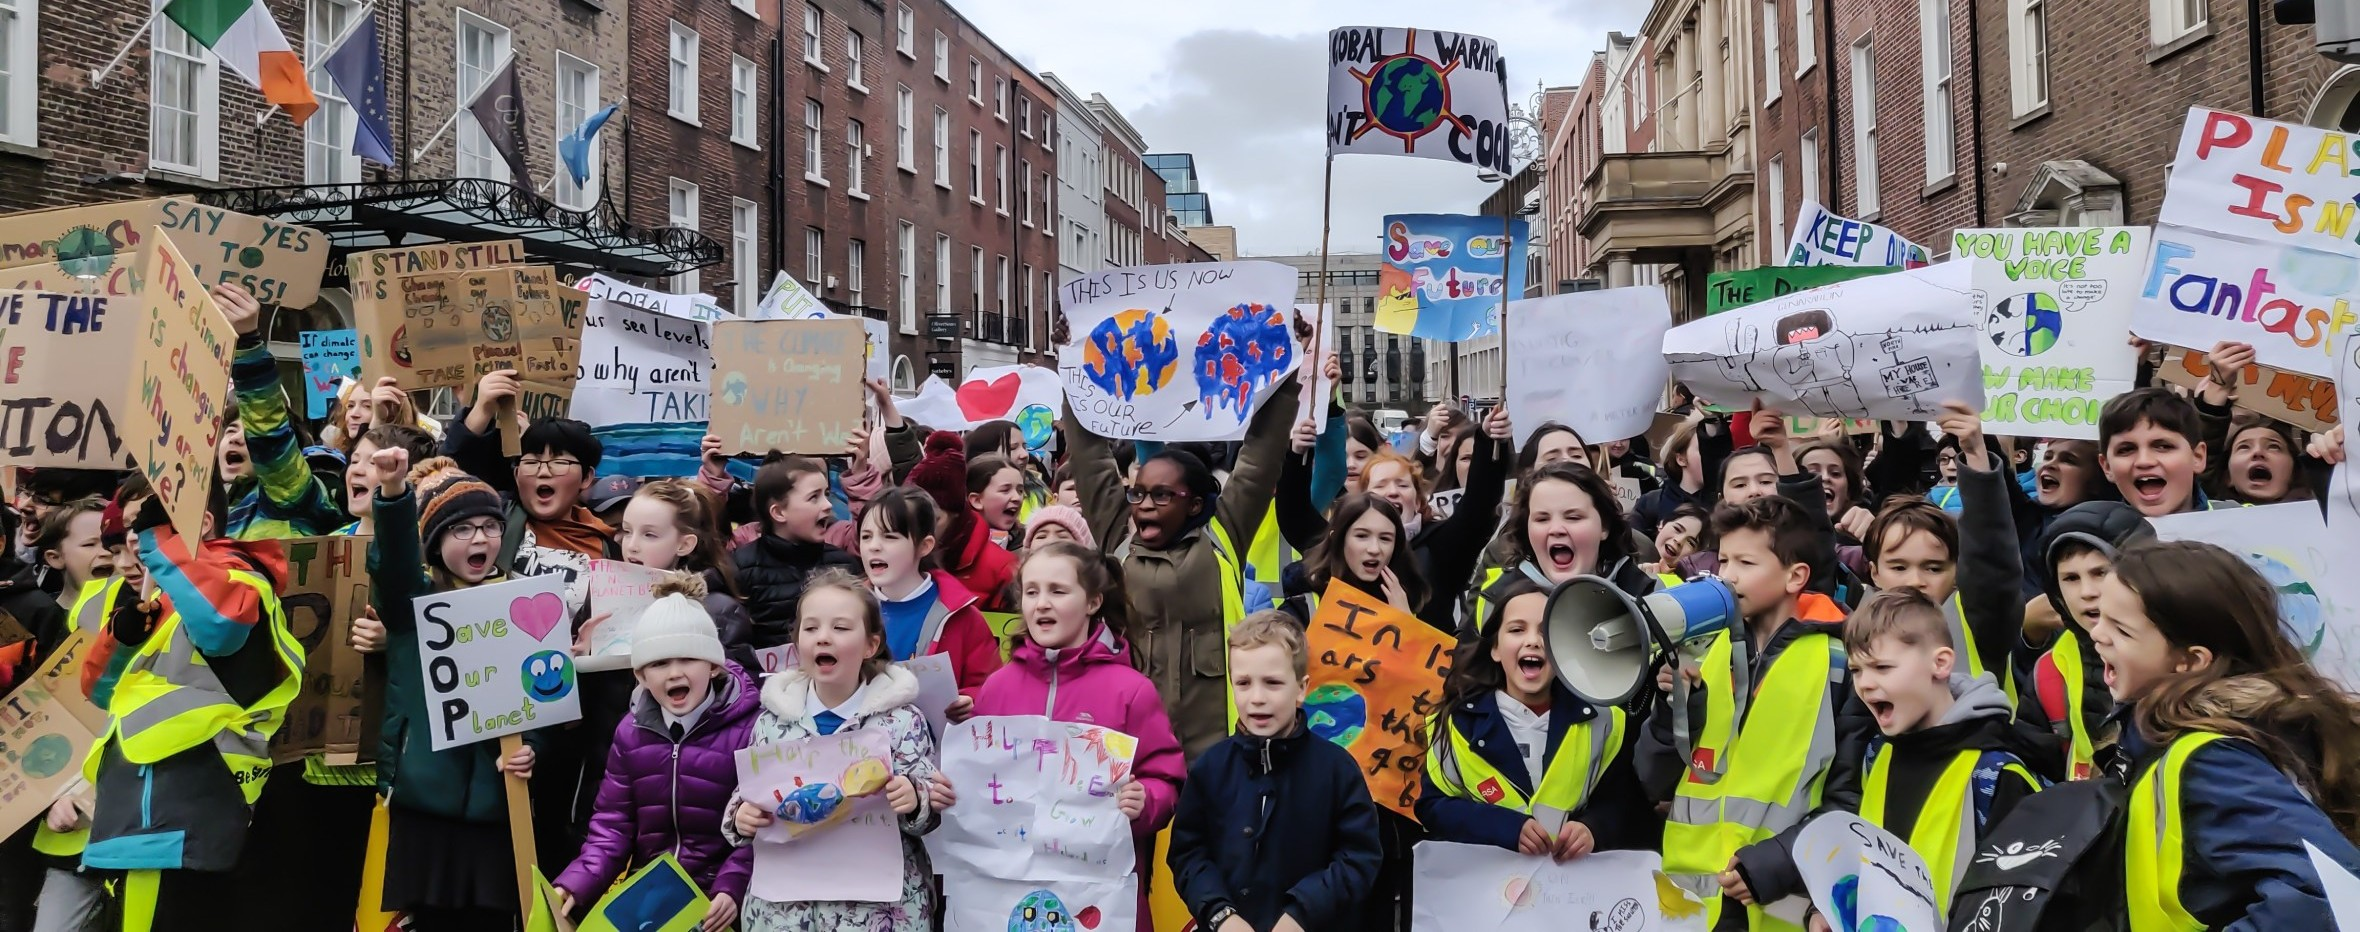 Ireland's Climate Action Plan: Missed opportunity